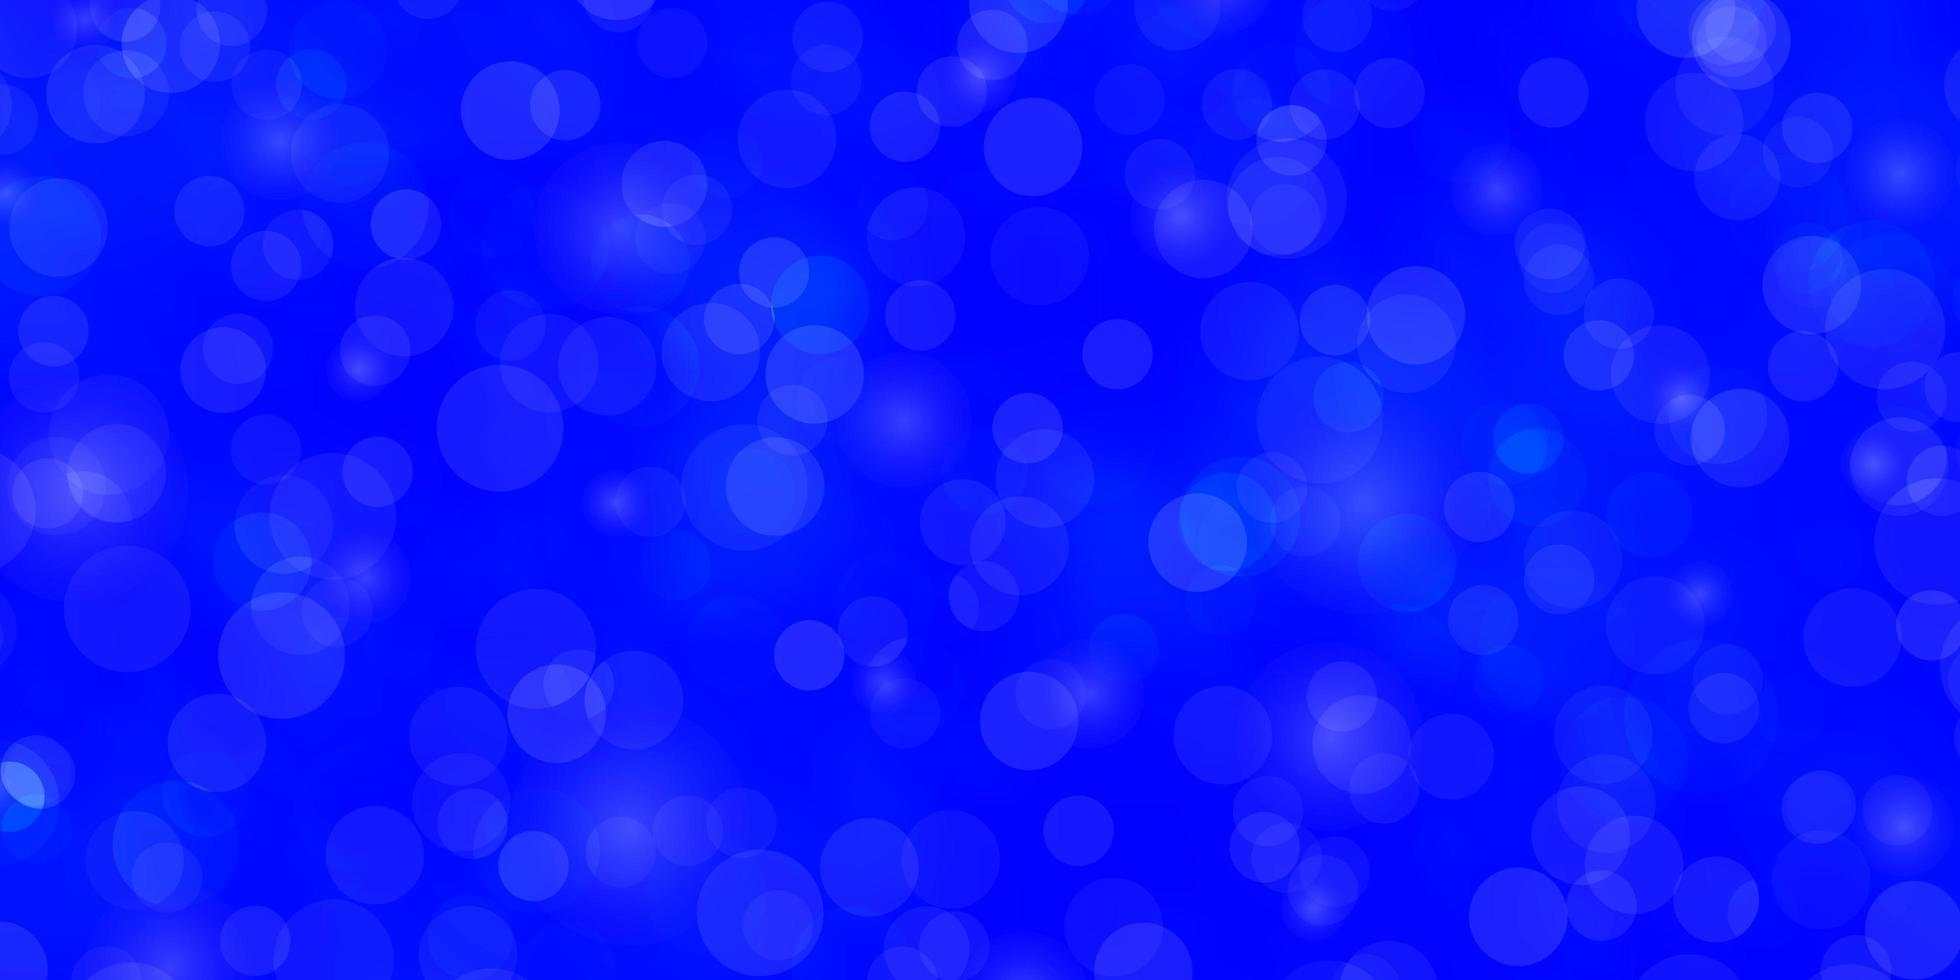 Light BLUE vector backdrop with circles.